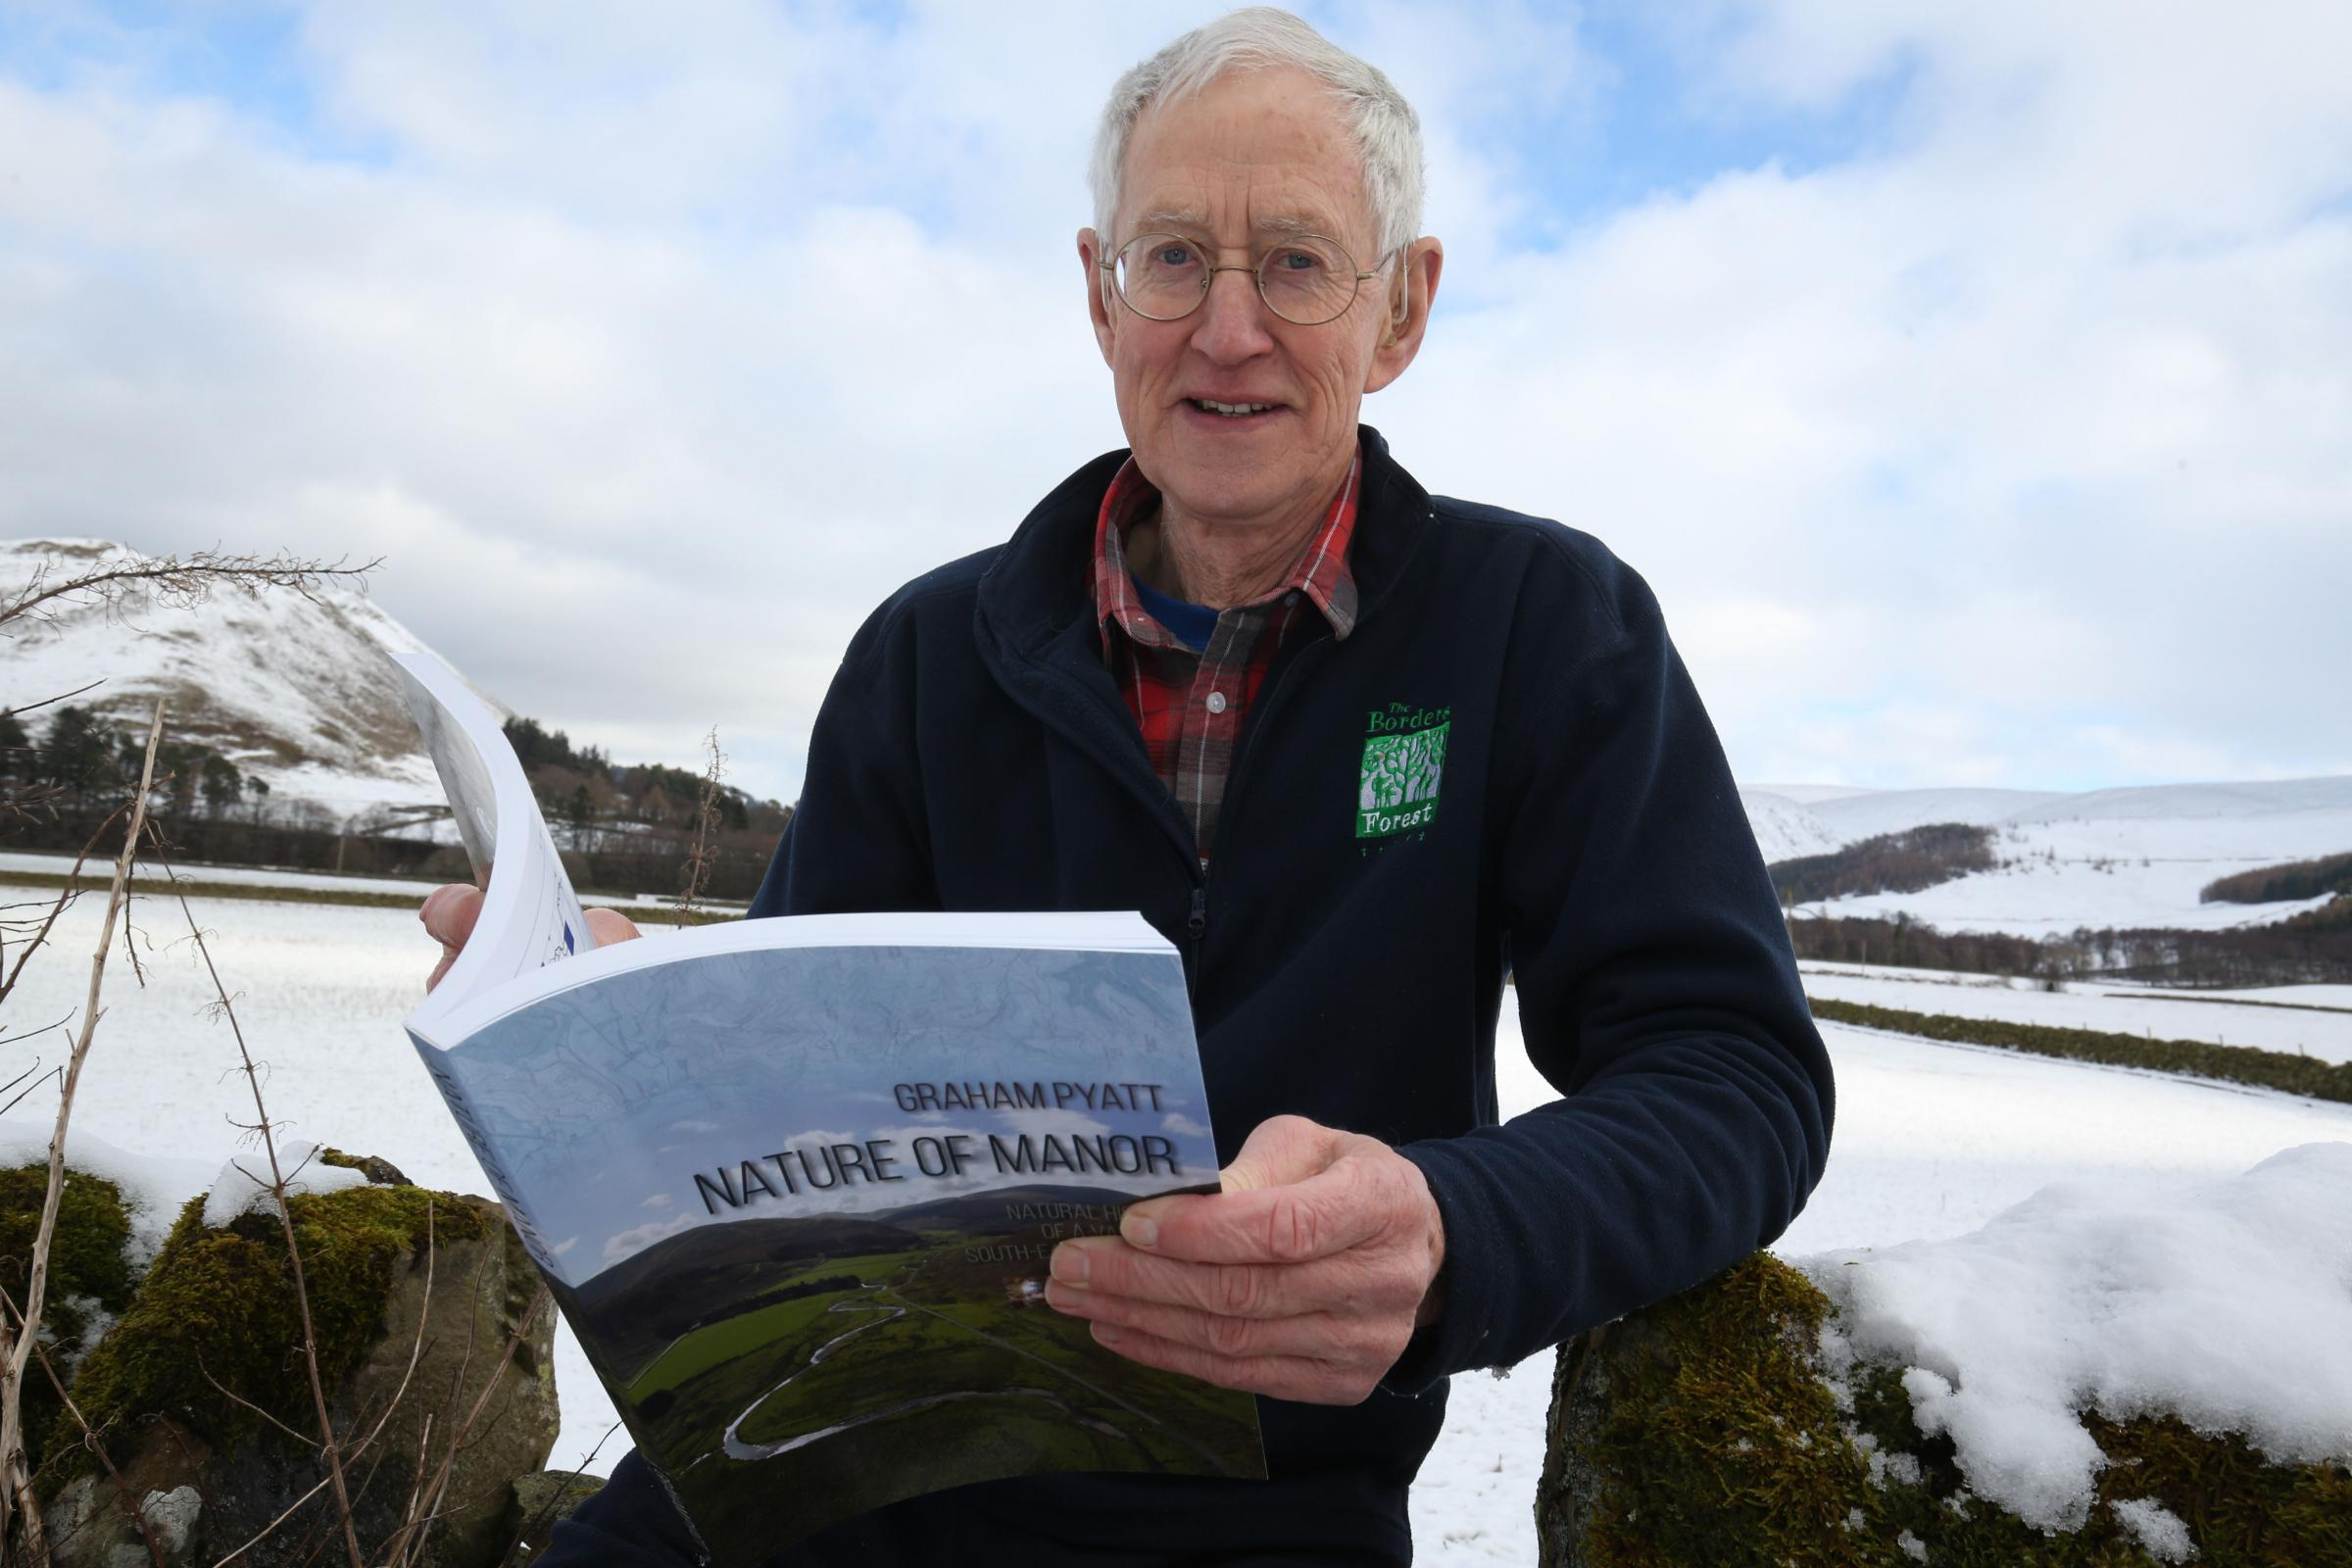 Peebles author Graham Pyatt. Photo by Helen Barrington